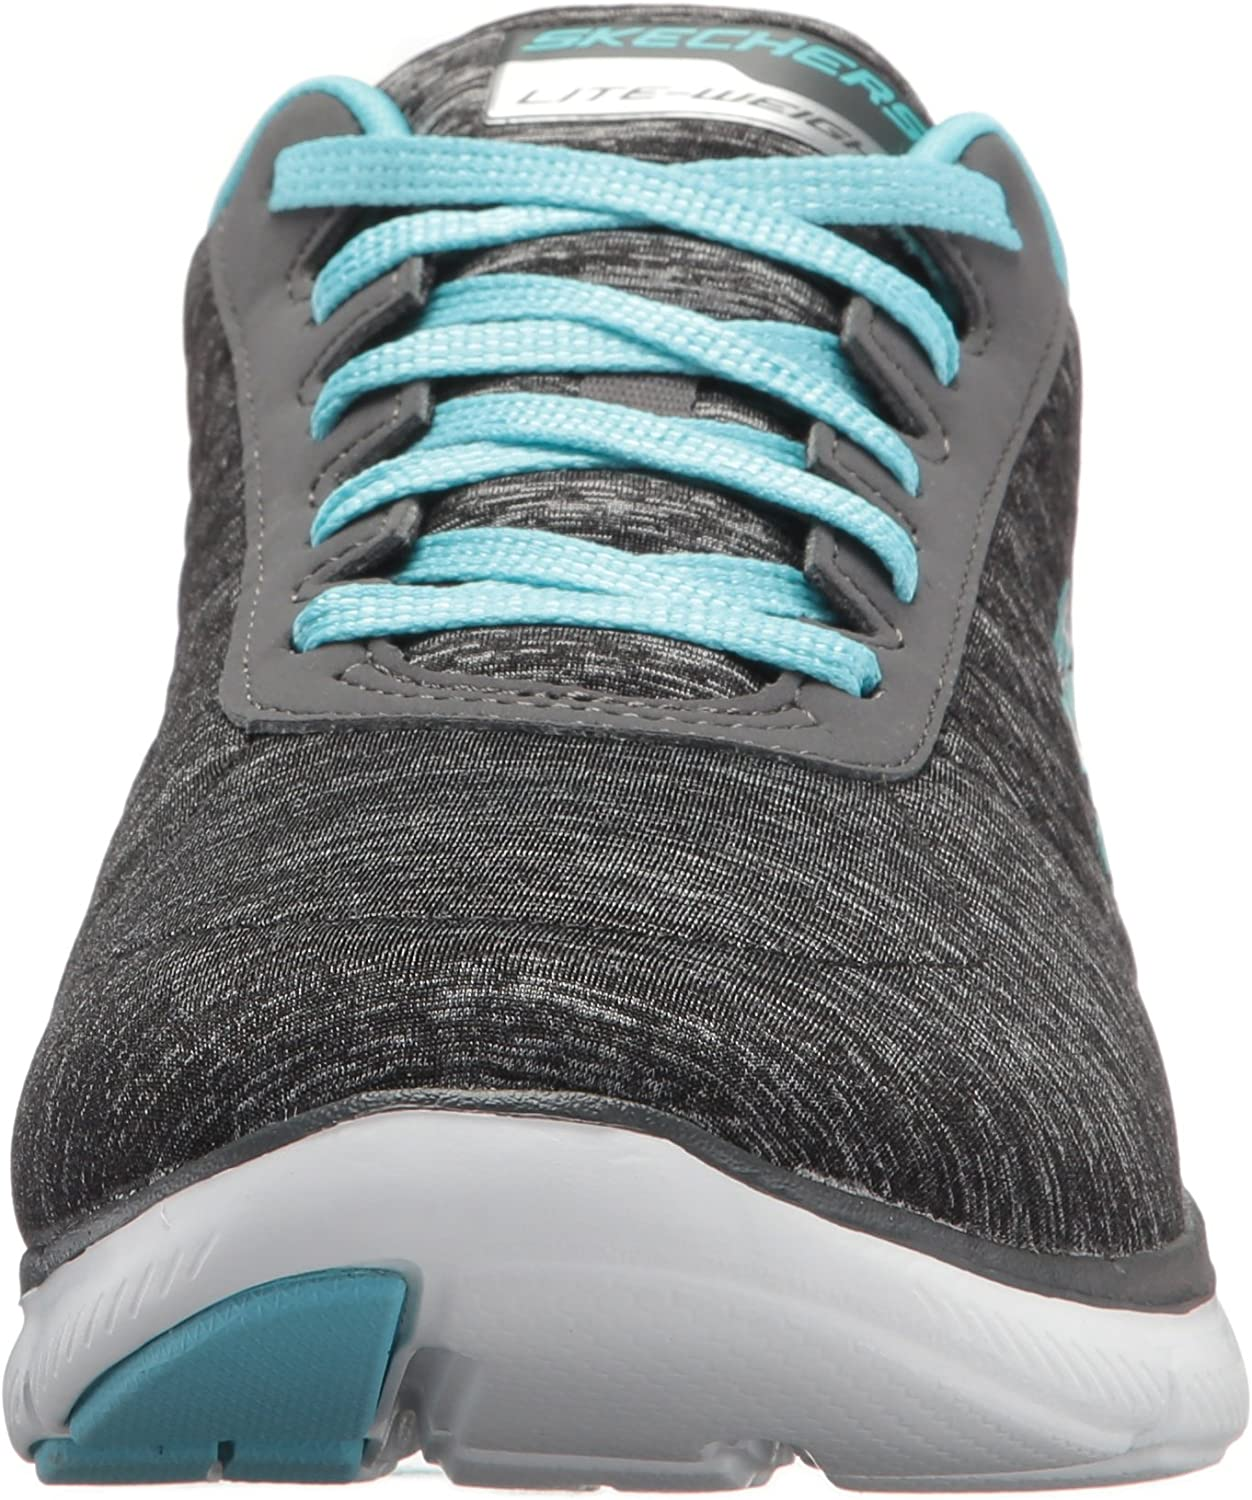 Skechers Flex Appeal 2.0, Sneaker Basse Donna Black Light Blue